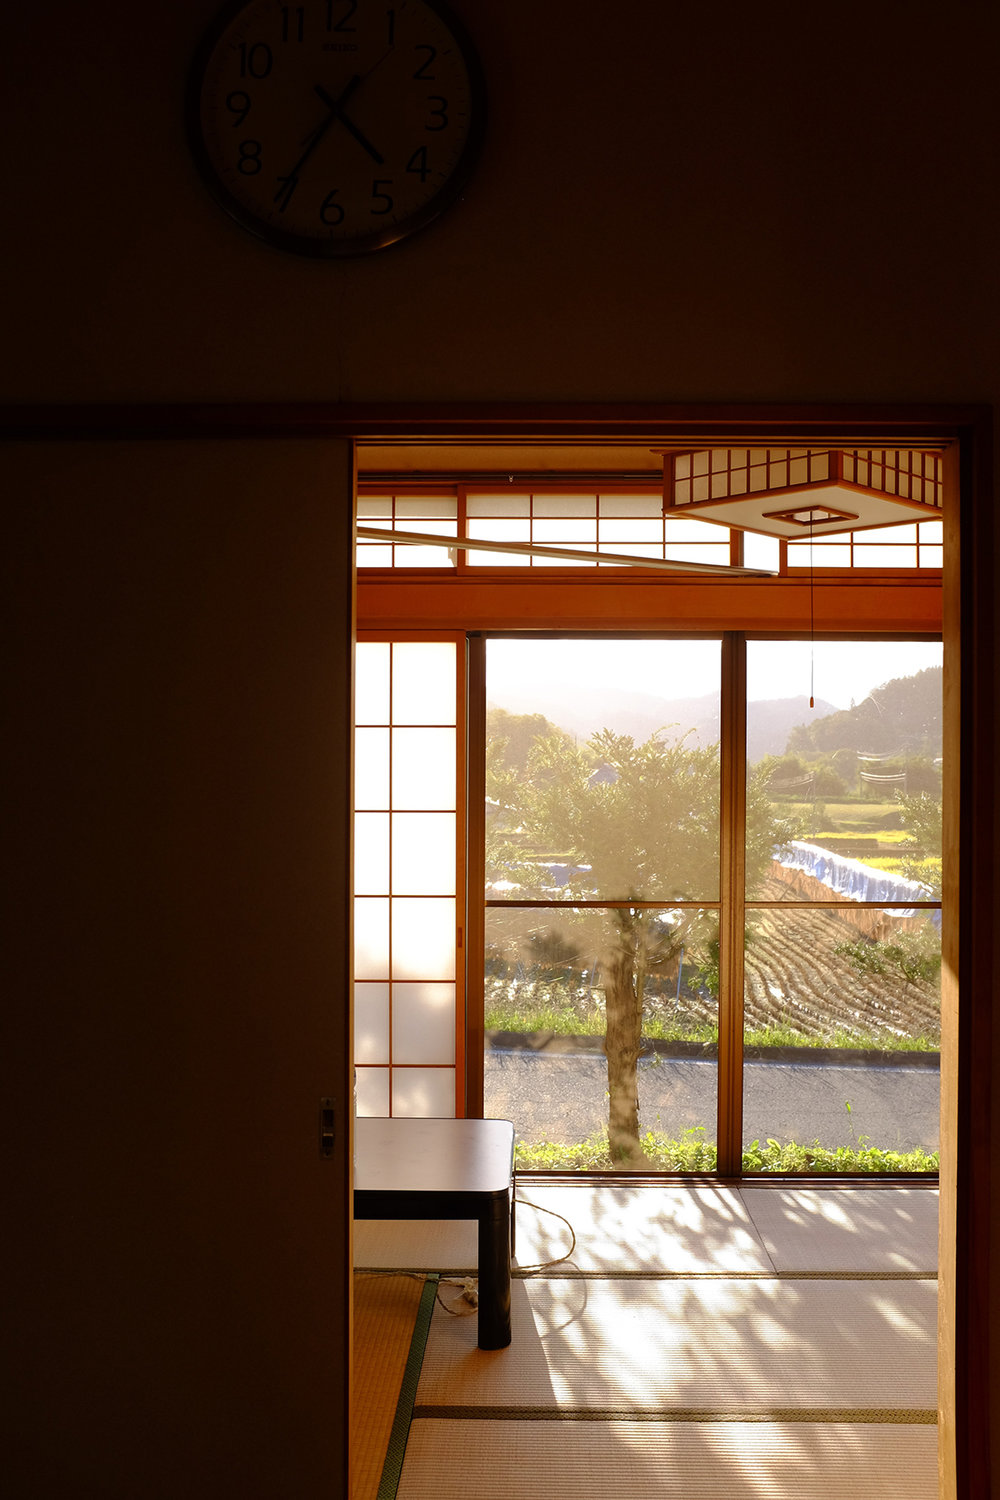 Sunset in Tatami room